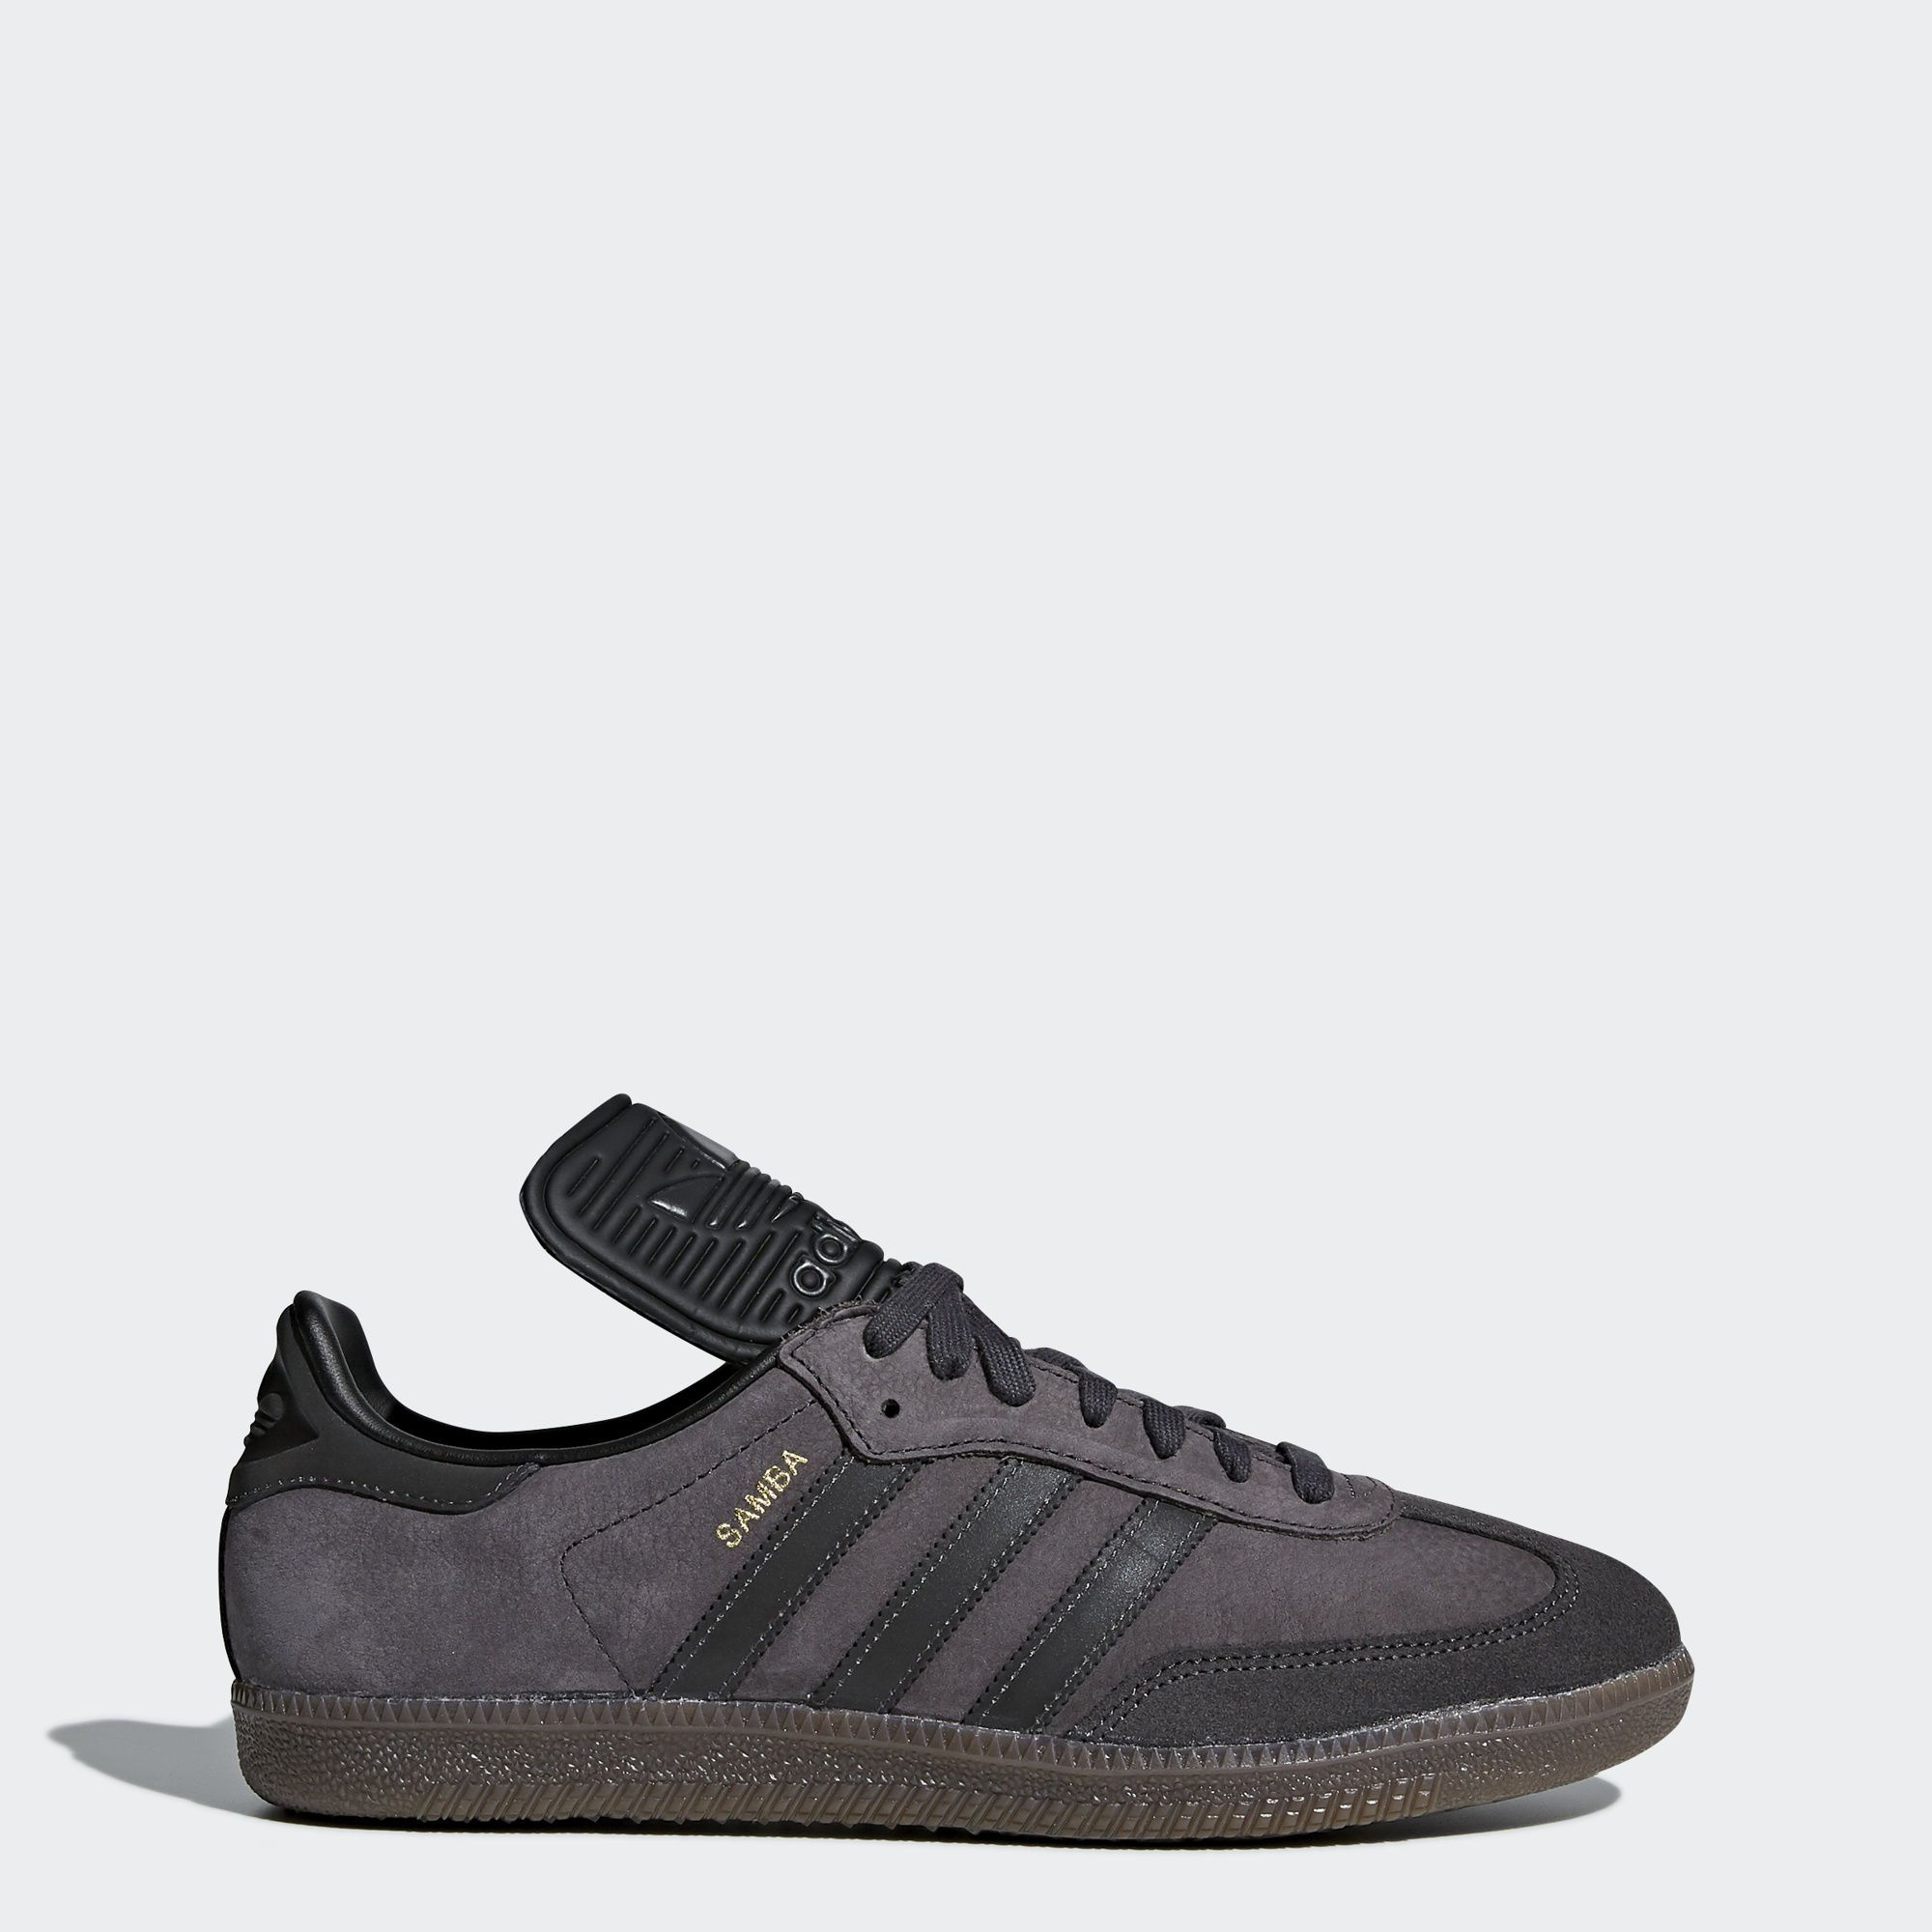 c45ddb4b9edc The legacy of adidas Samba shoes began when they first stepped onto the  field in the